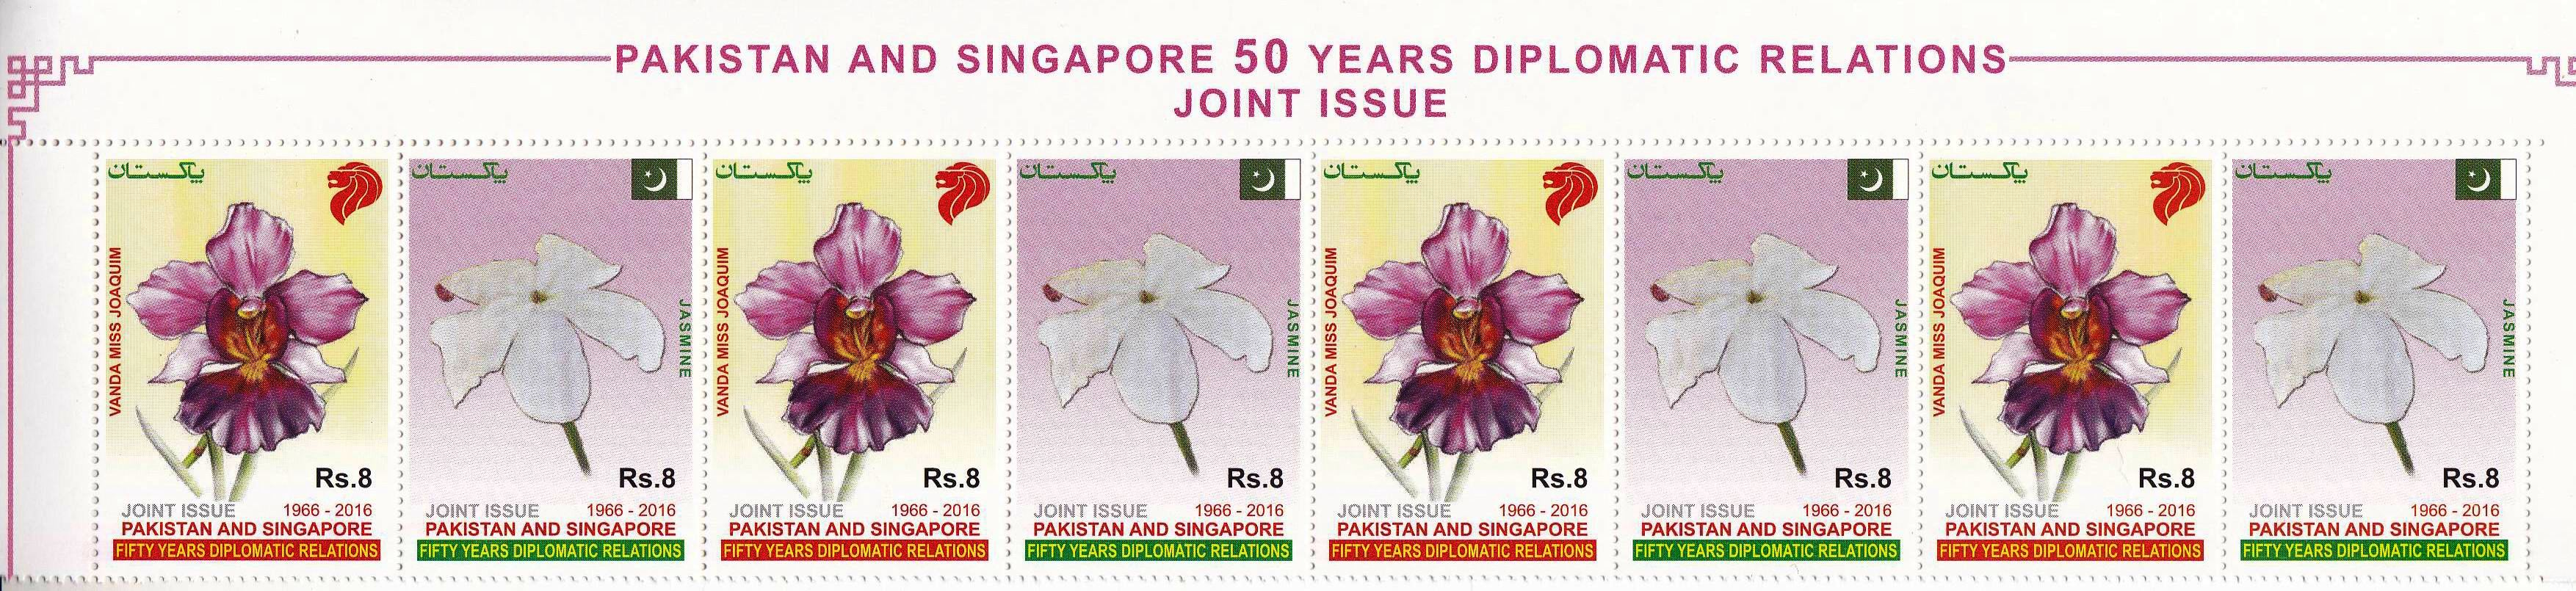 Pakistan Stamps 2016 Joint Issue Singapore Flowers Orchids MNH